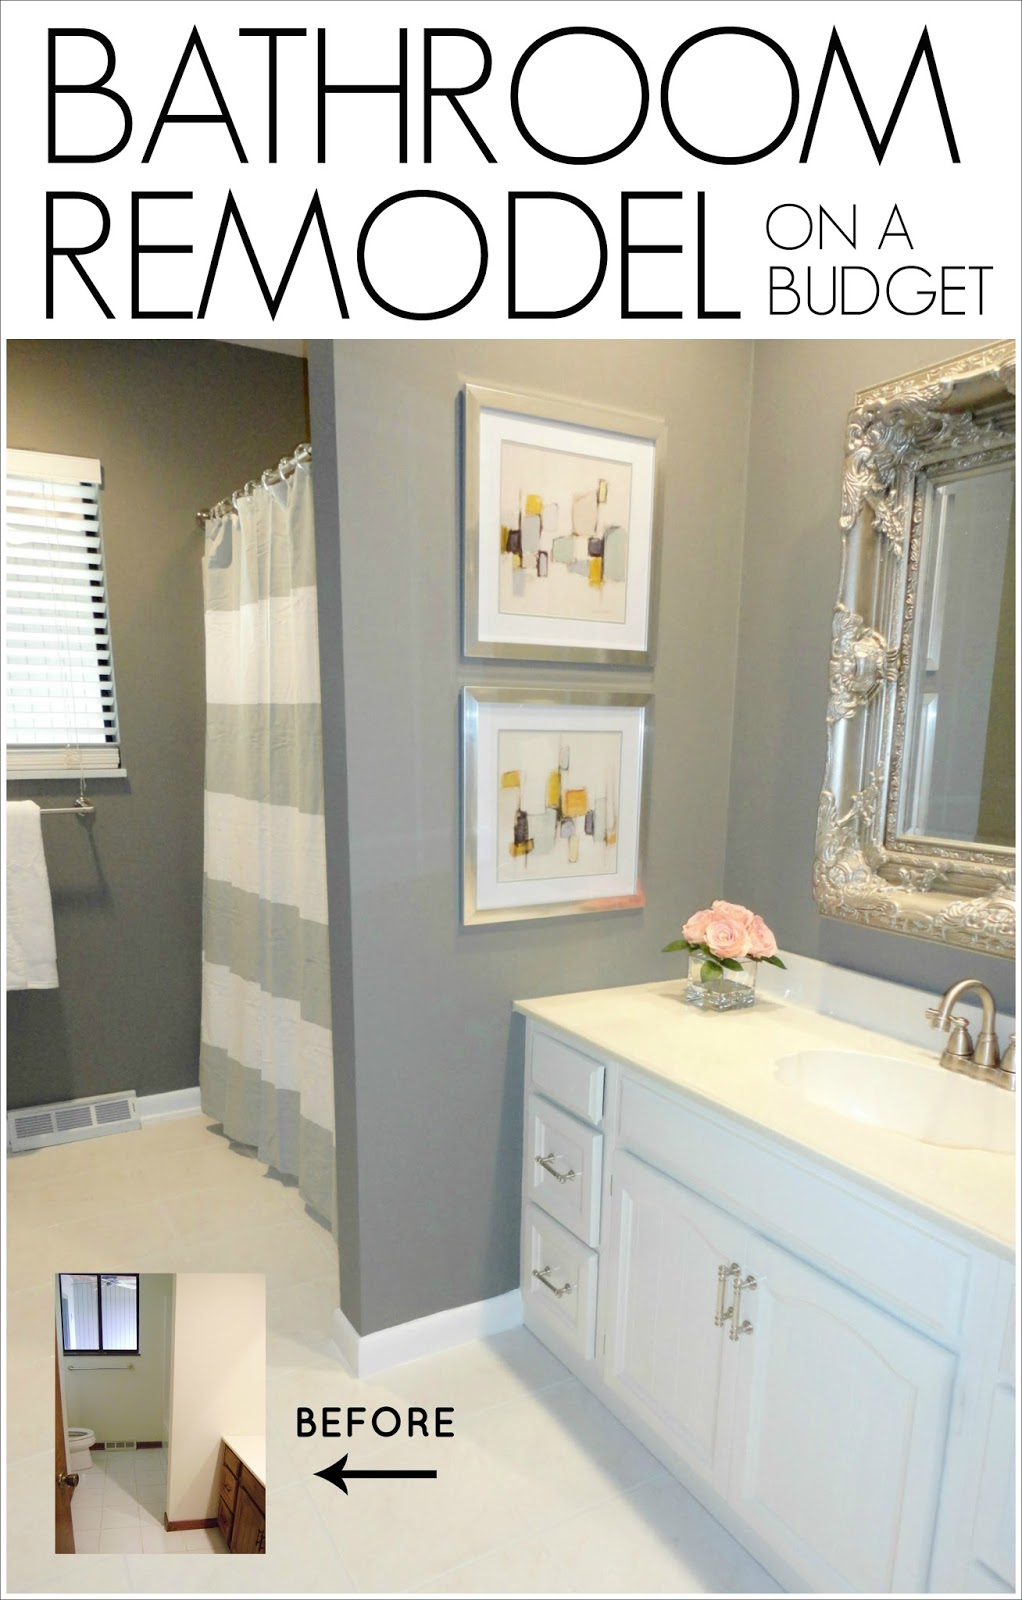 Livelovediy diy bathroom remodel on a budget for Homes on budget com